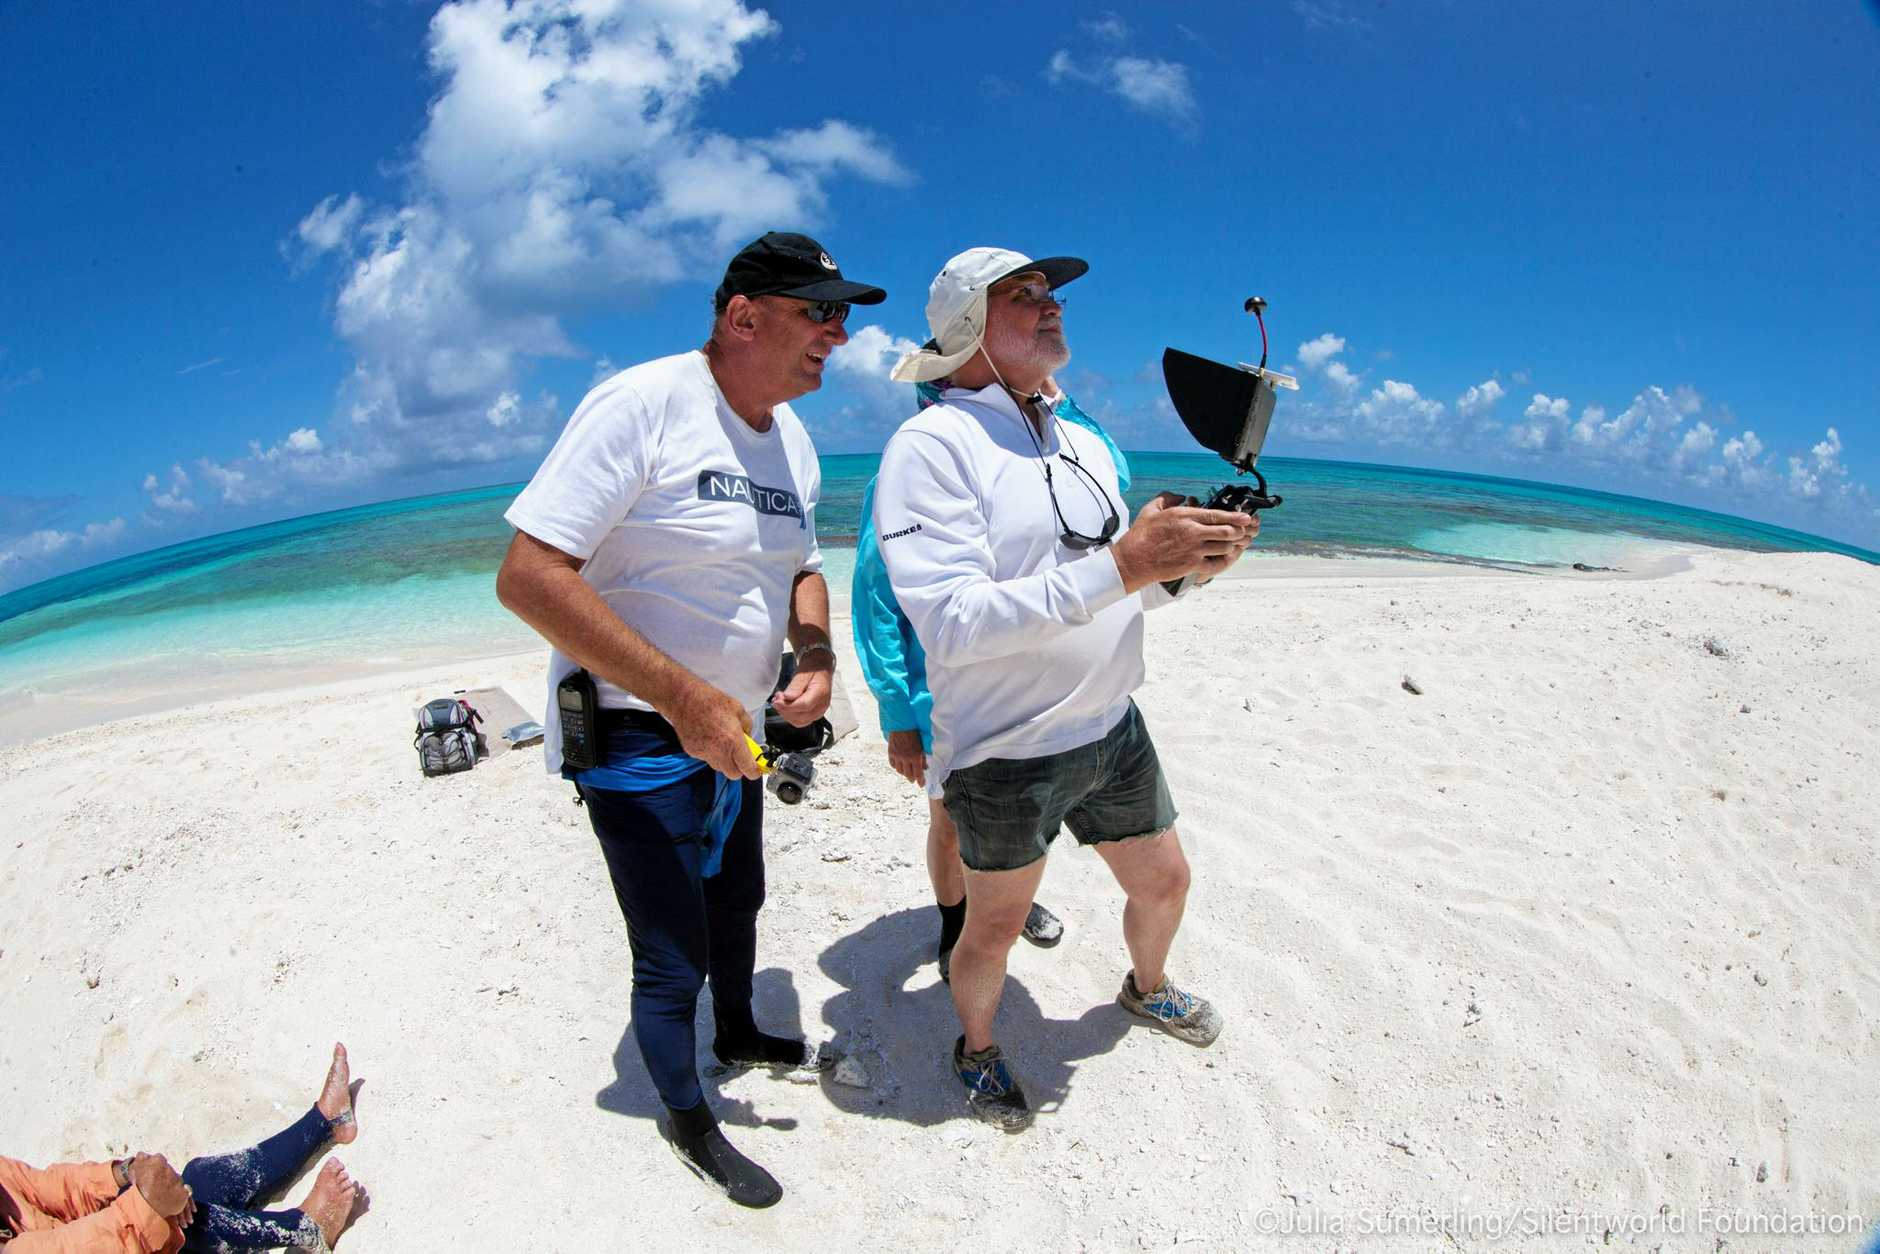 A supplied image obtained Friday, Jan.27, 2017 of John Mullen (left) watching maritime archaeologist and Silentworld Foundation Director Paul Hundley piloting a drone to obtain aerial imagery of historic shipwreck material exposed on the reef top at Kenn Reef, off central Queensland, in January 2017. (AAP Image/ Julia Sumerling, Silentworld Foundation) NO ARCHIVING, EDITORIAL USE ONLY